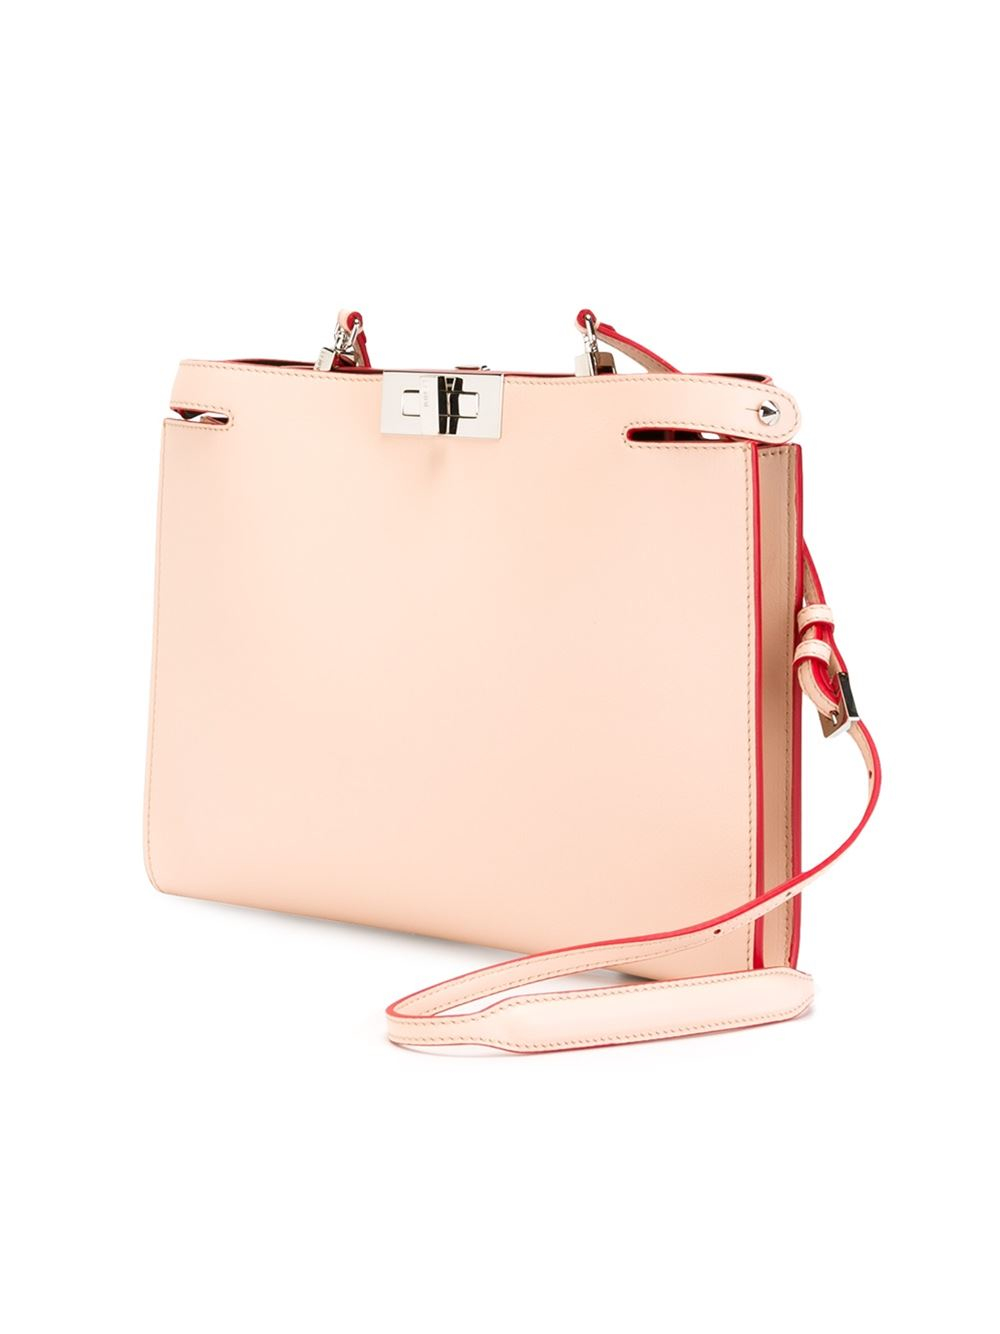 Fendi Flat Leather Shoulder Bag in Pink | Lyst